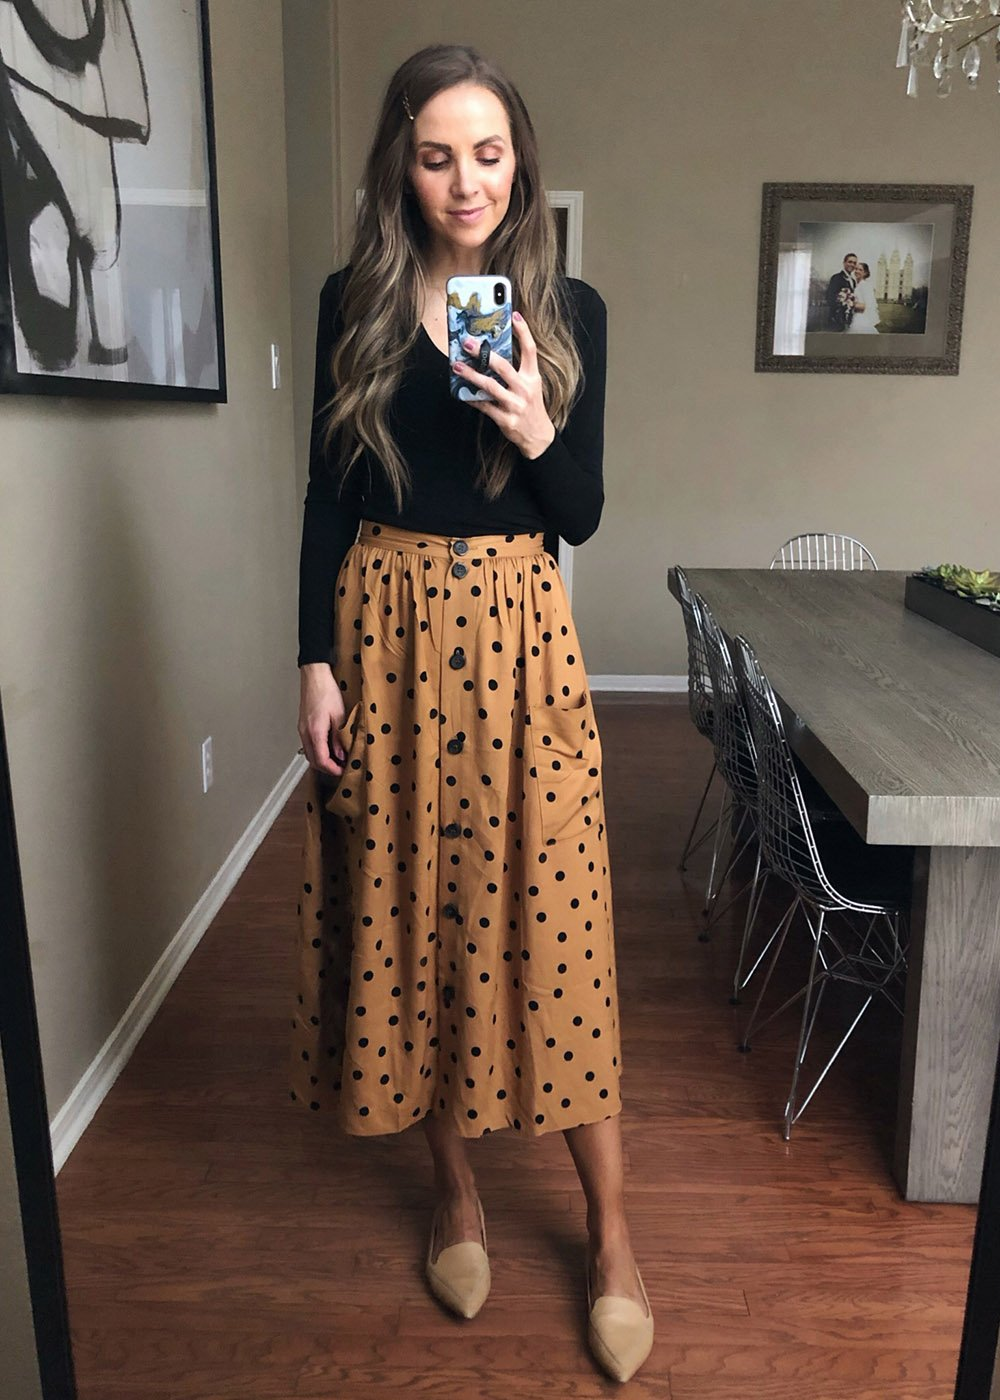 black body suit and polka dot skirt | instagram outfits